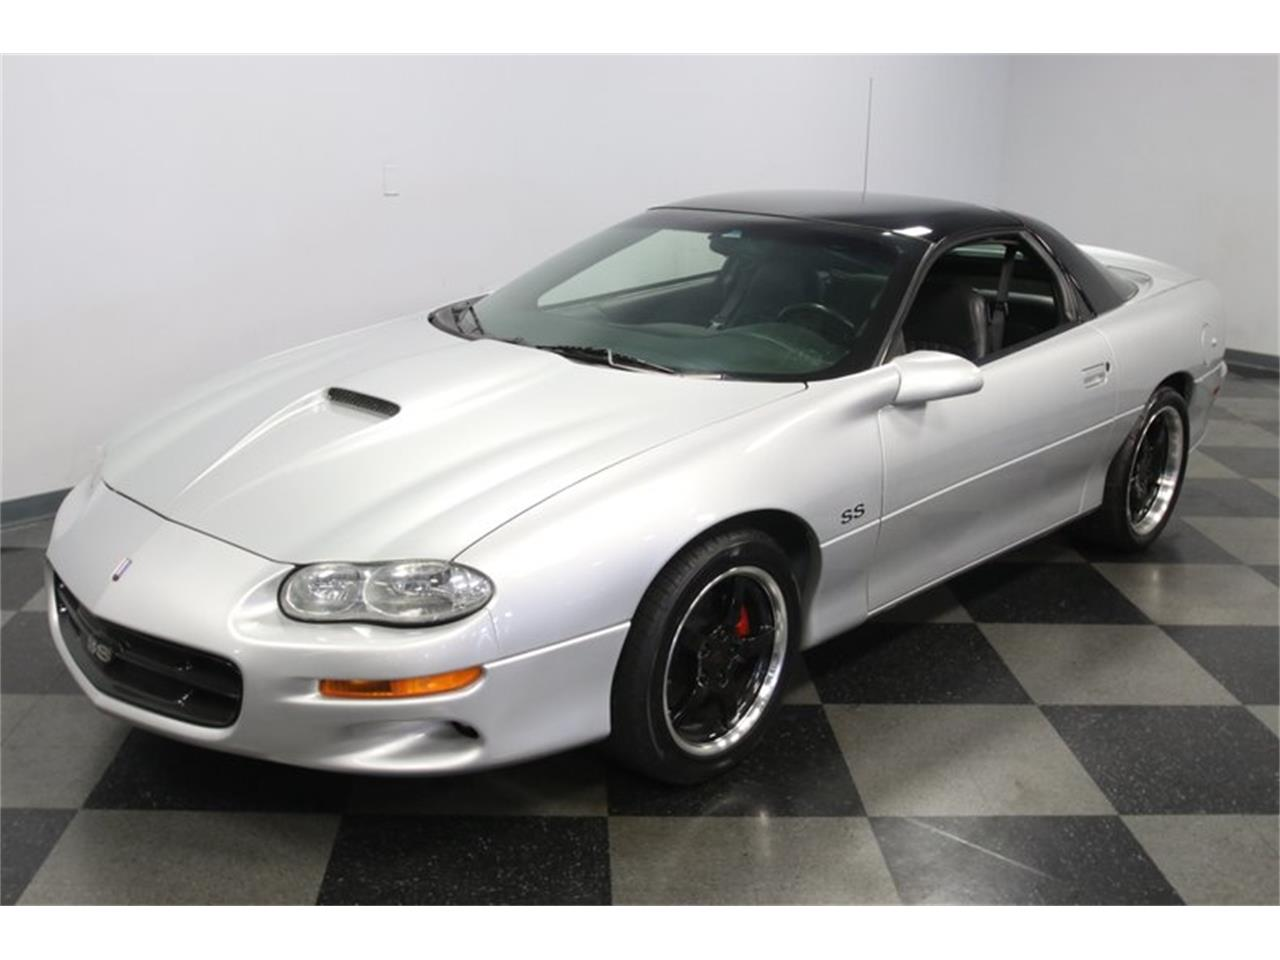 2002 Chevrolet Camaro (CC-1390971) for sale in Concord, North Carolina